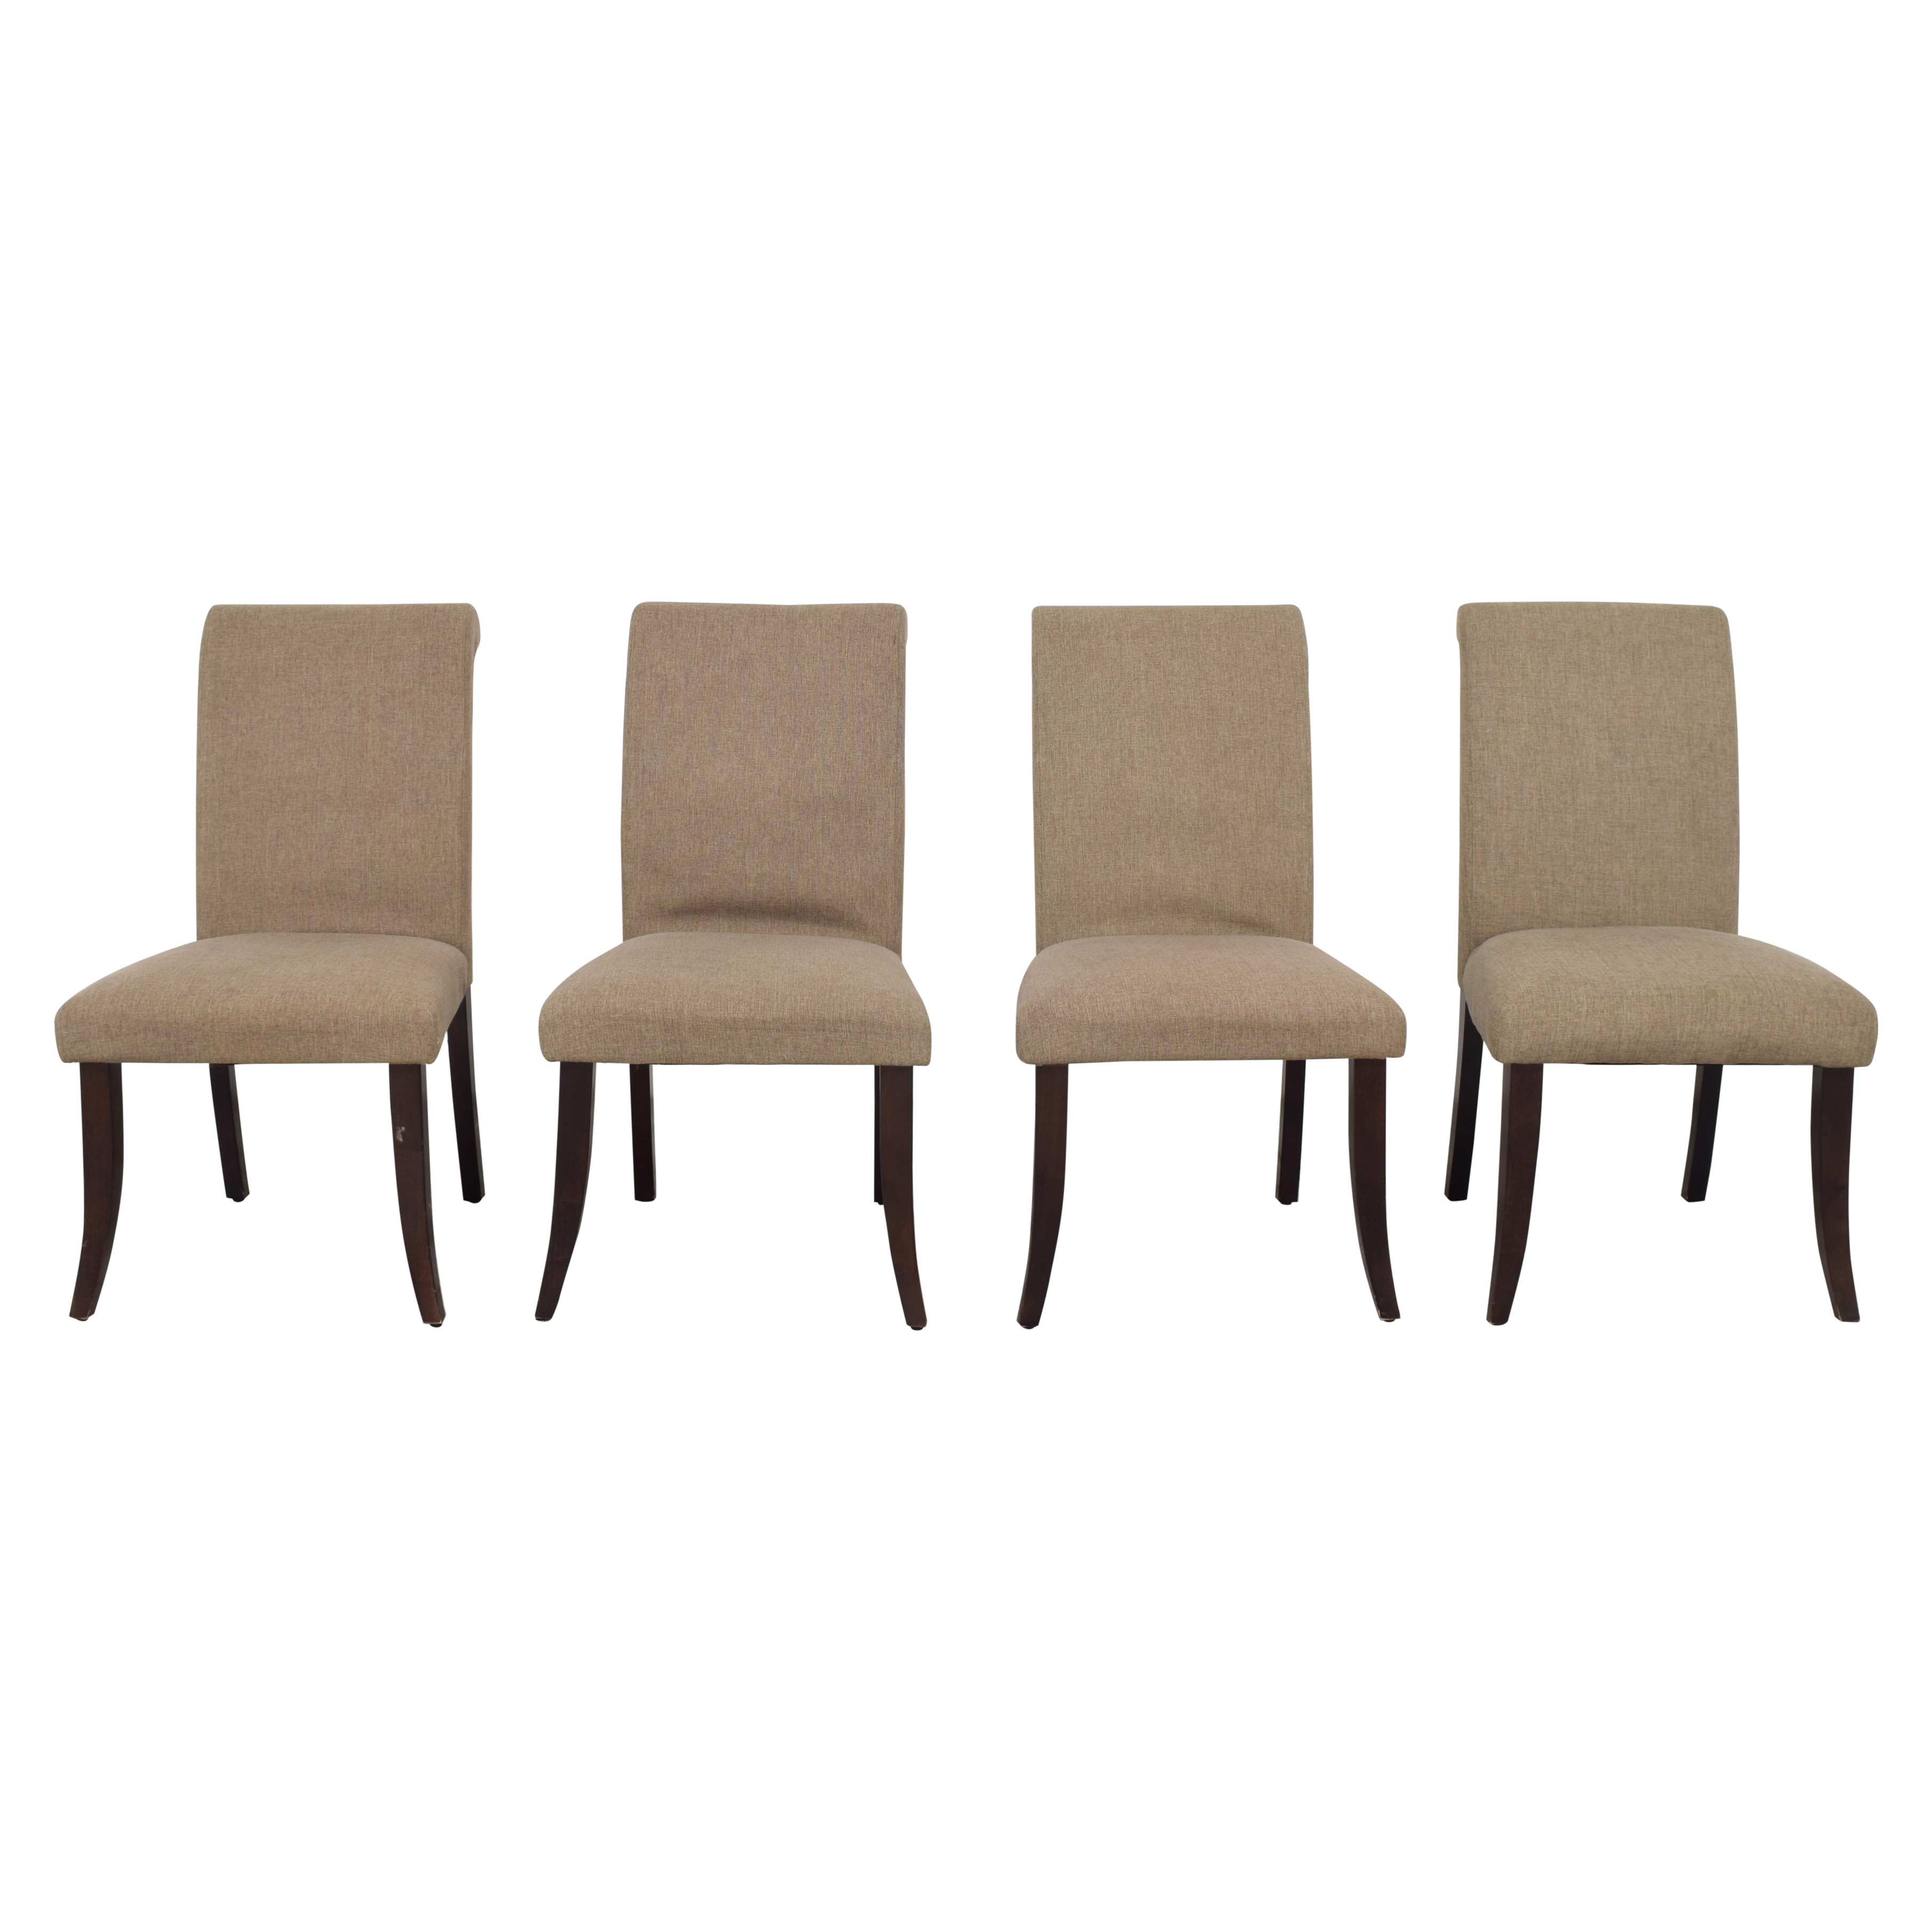 Pottery Barn Pottery Barn Comfort Roll Dining Chairs for sale